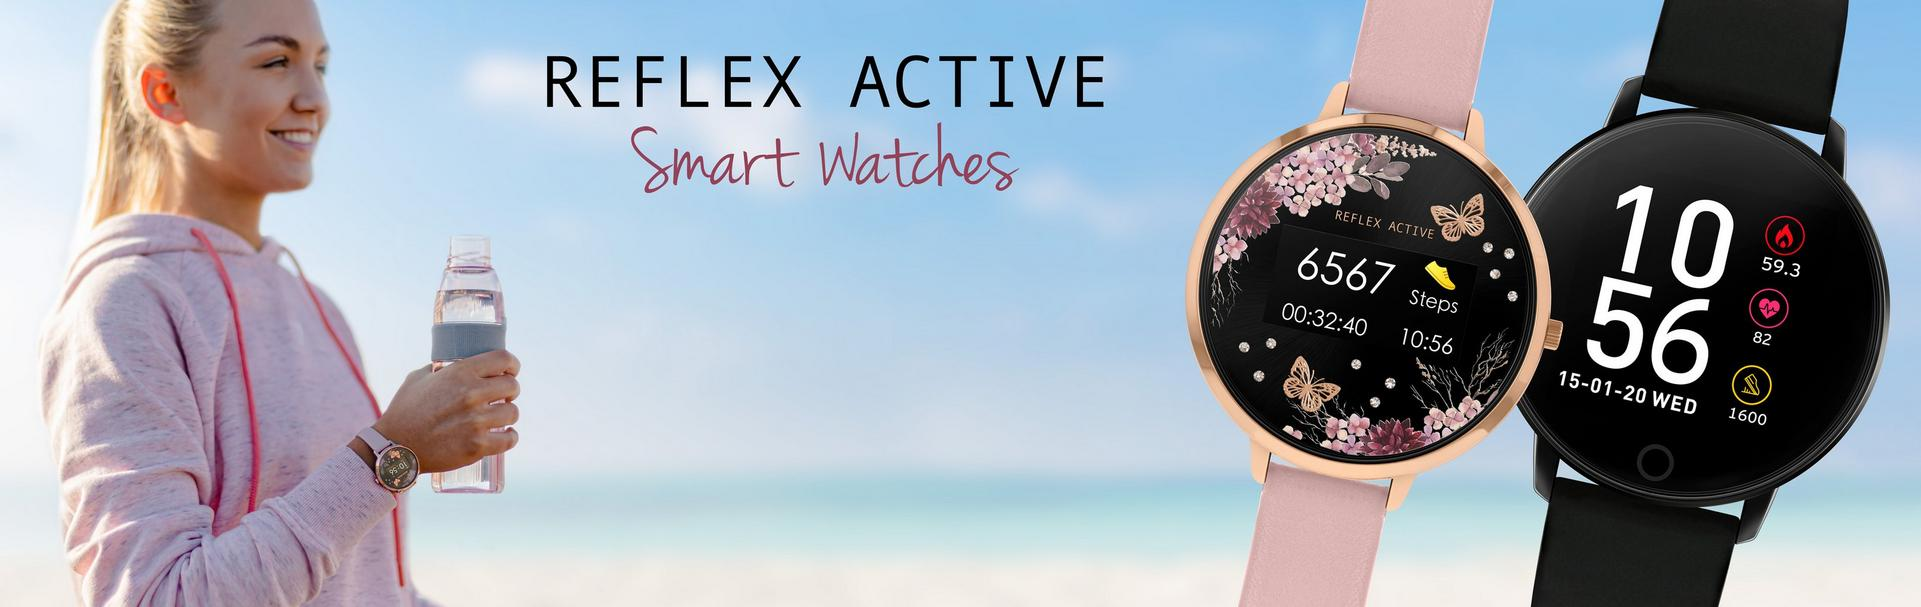 reflex active smart watches